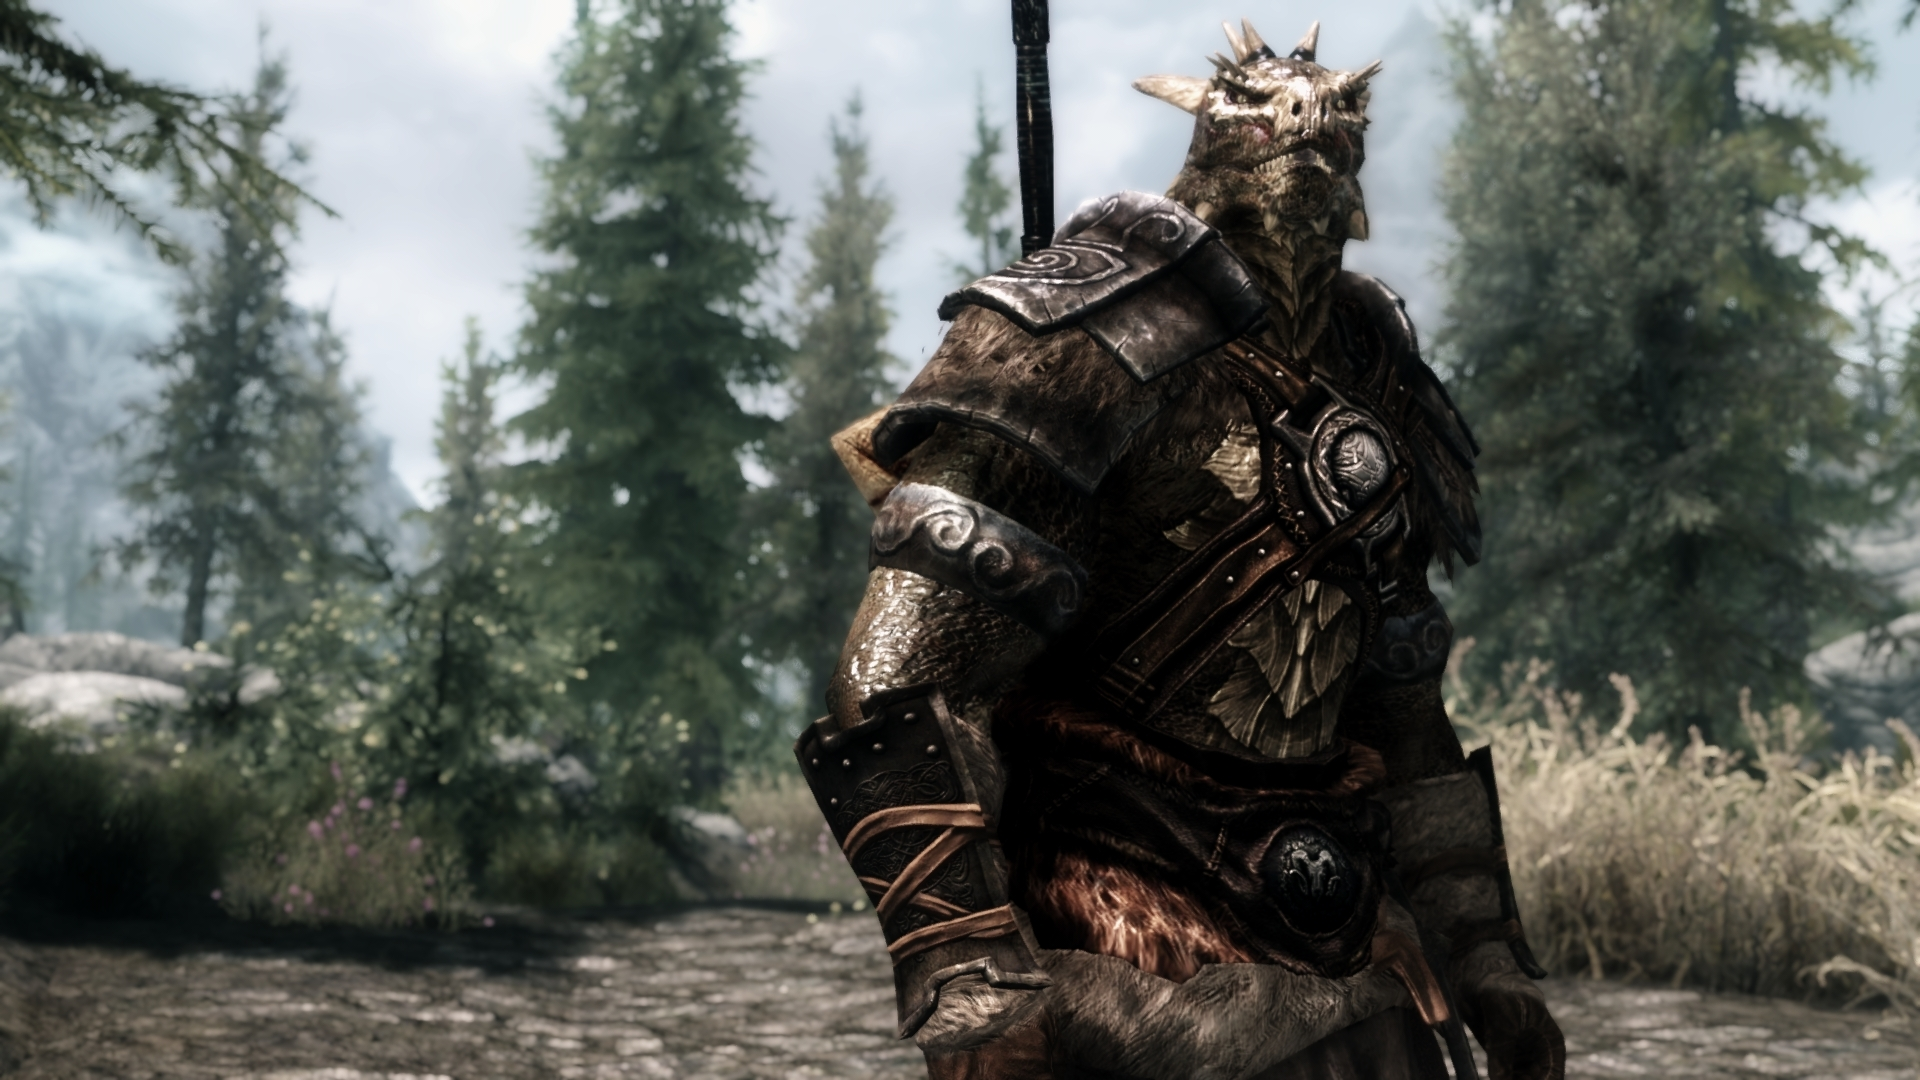 What S The Best Horse For A Paladin Build In Skyrim